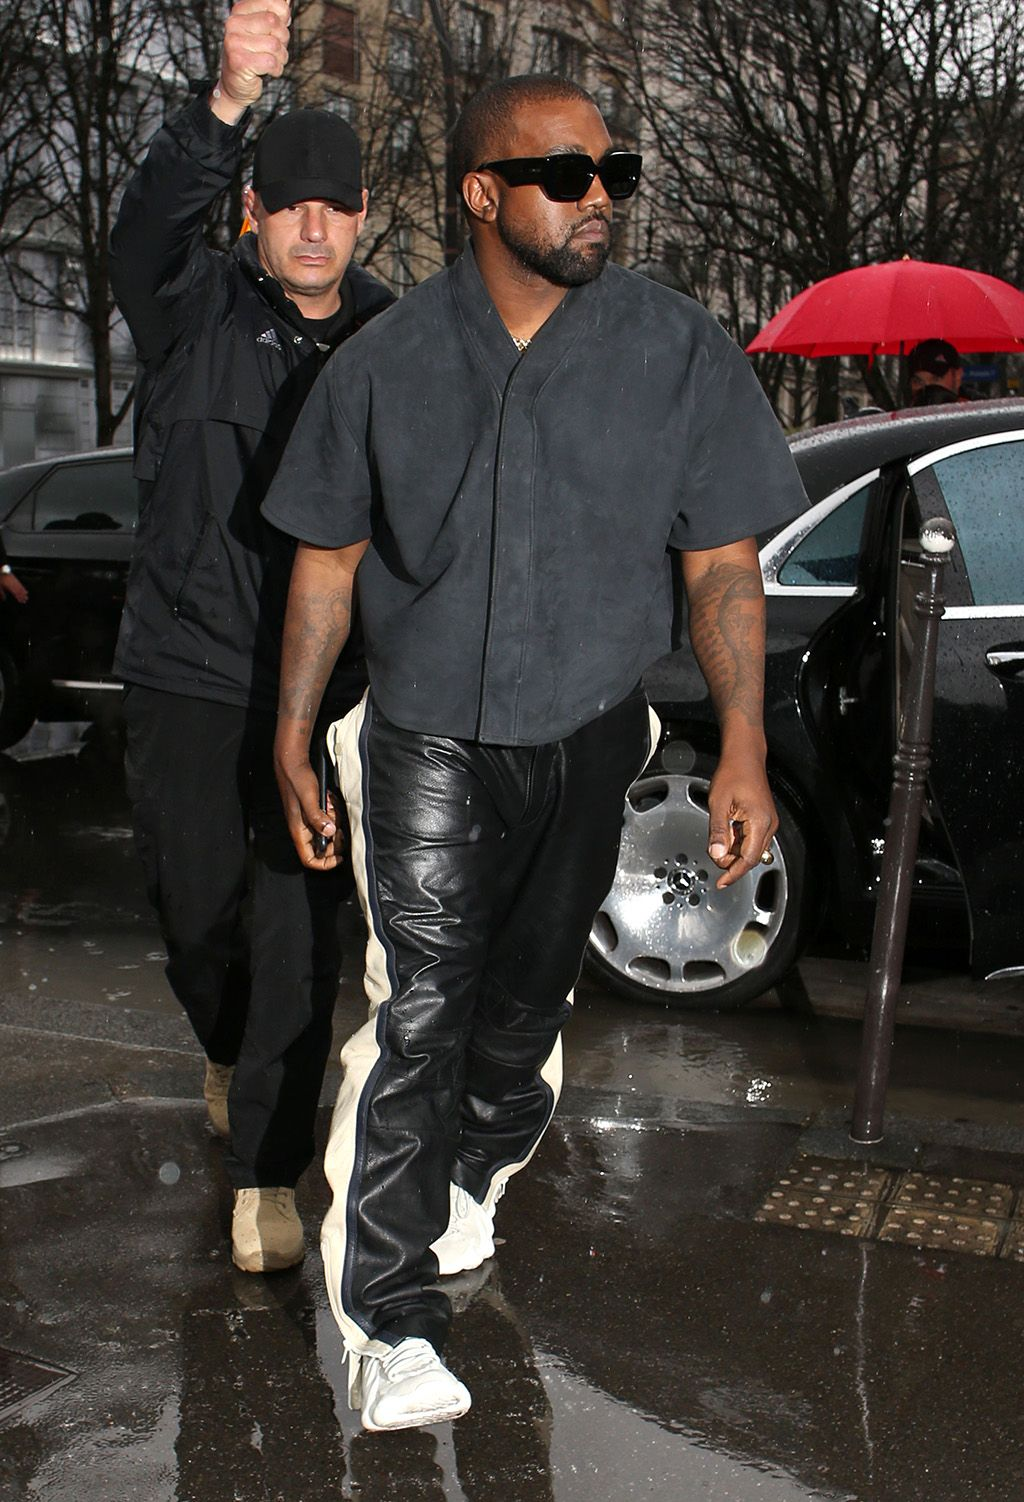 Kanye West S Yeezy 451 Wavy Sneakers In Paris For Sunday Service Footwear News In 2020 Kanye West Outfits Kanye West Kanye Fashion